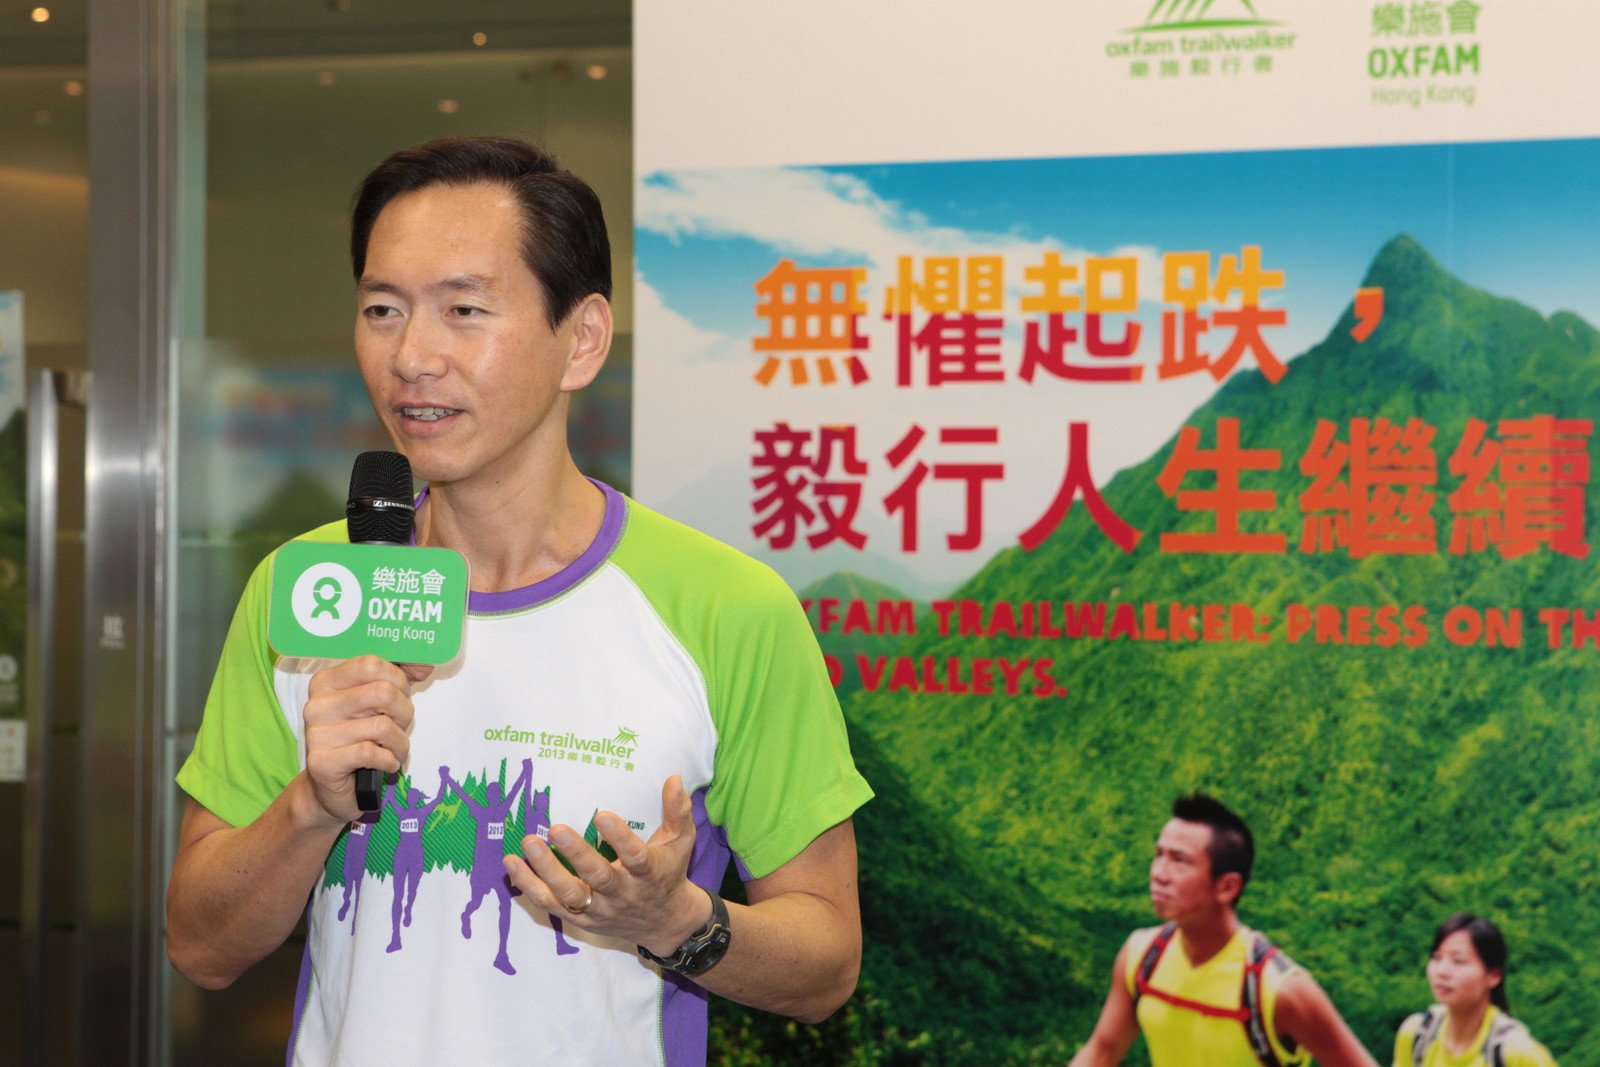 Bernard Chan, Chair of Oxfam Trailwalker Advisory Committee, presented an opening speech at the Oxfam Trailwalker 2013 press conference today